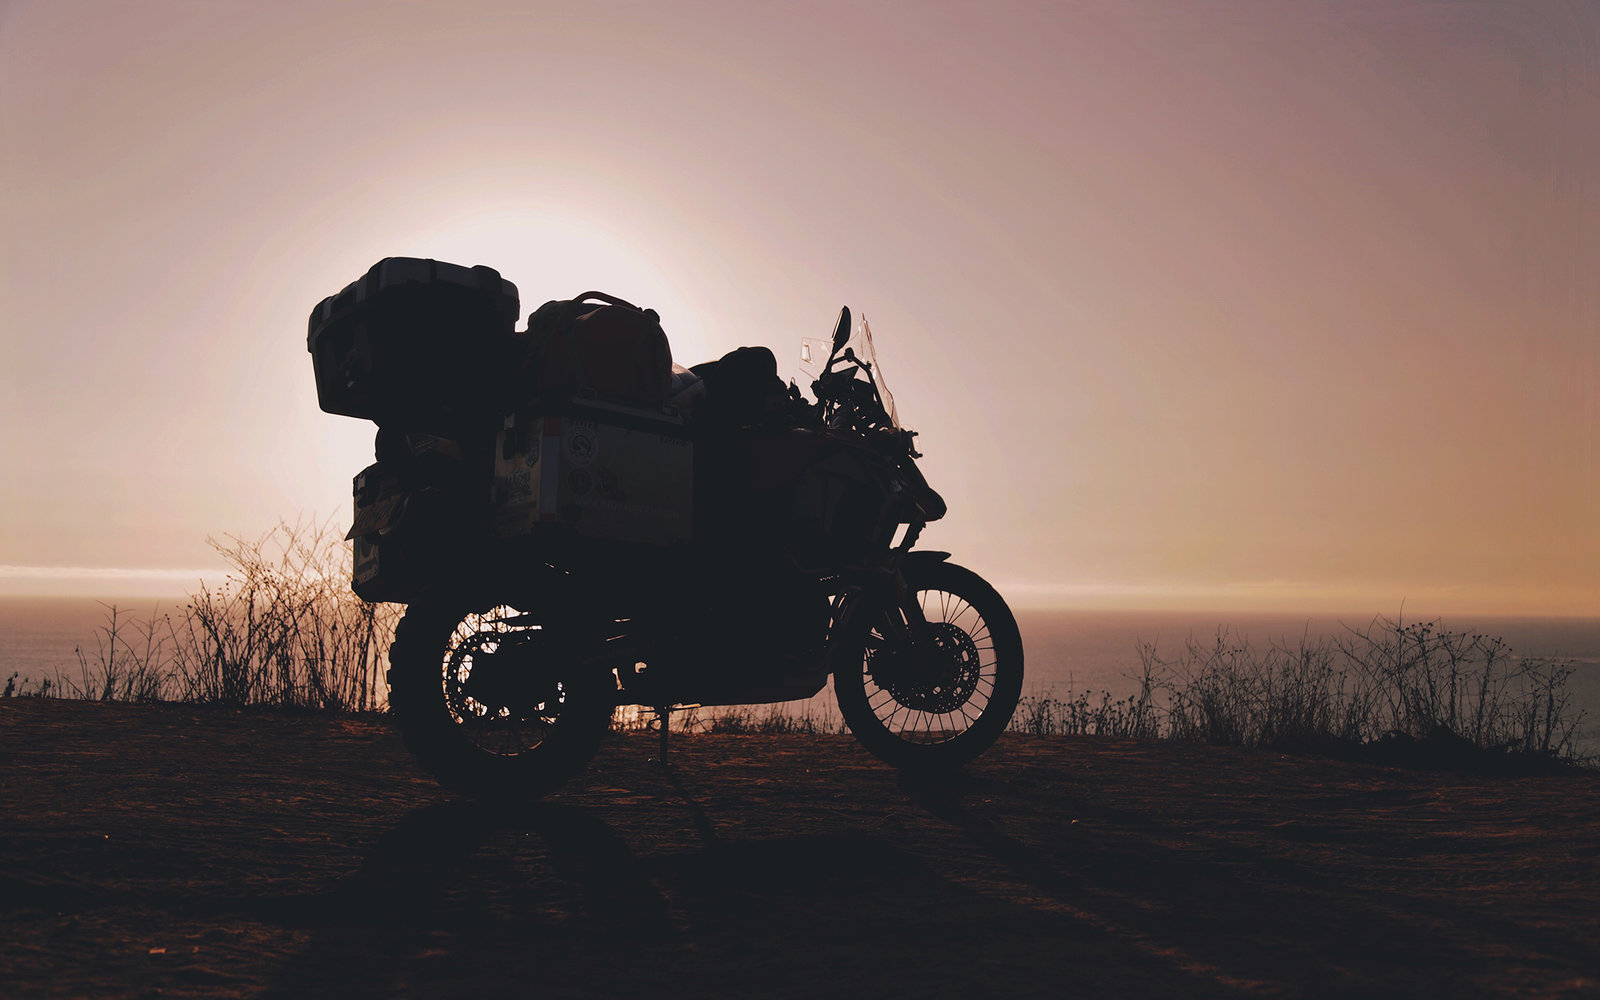 Silhouette Motorcycle Parked By Sea Against Sky During Sunset